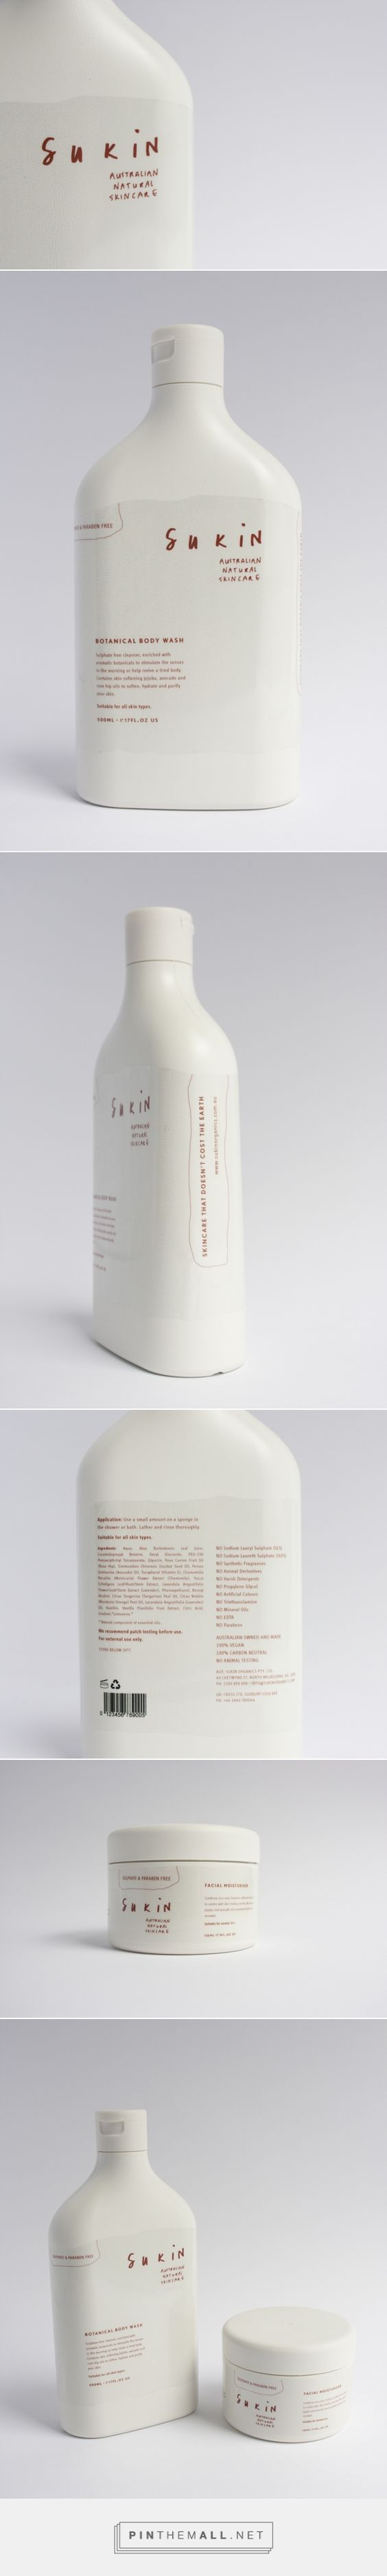 Sukin Skincare is an Australian natural personal care company whose products boast only the best ingredients nature has to offer. | Package Designed by Danielle Fritz